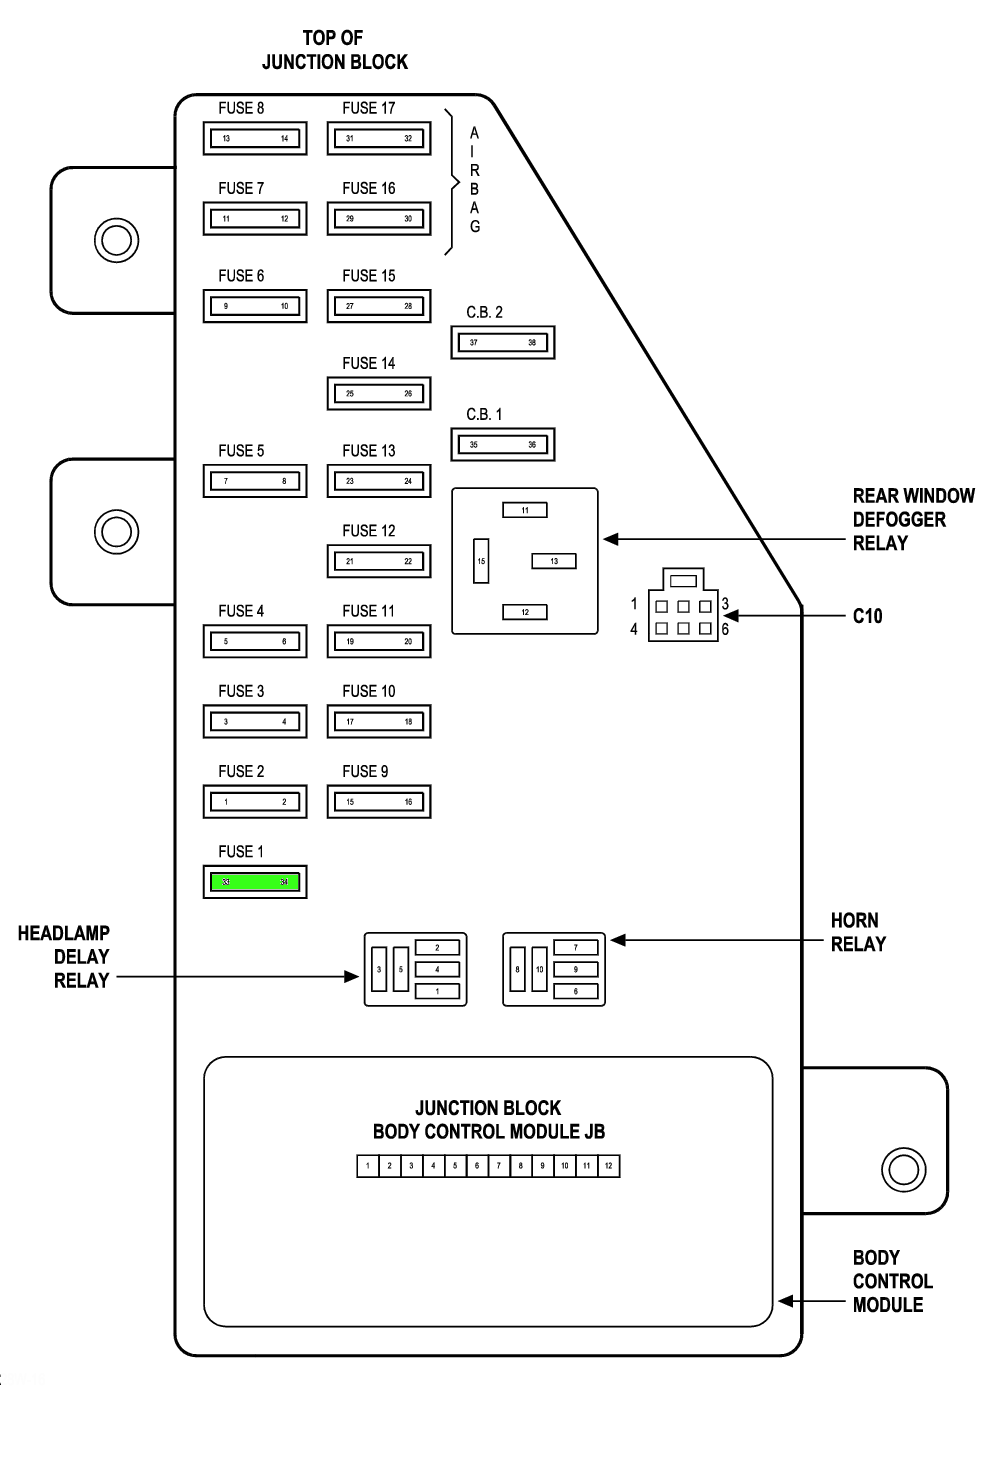 2002 chrysler sebring fuse diagram. interior fuse box location 2011 ...